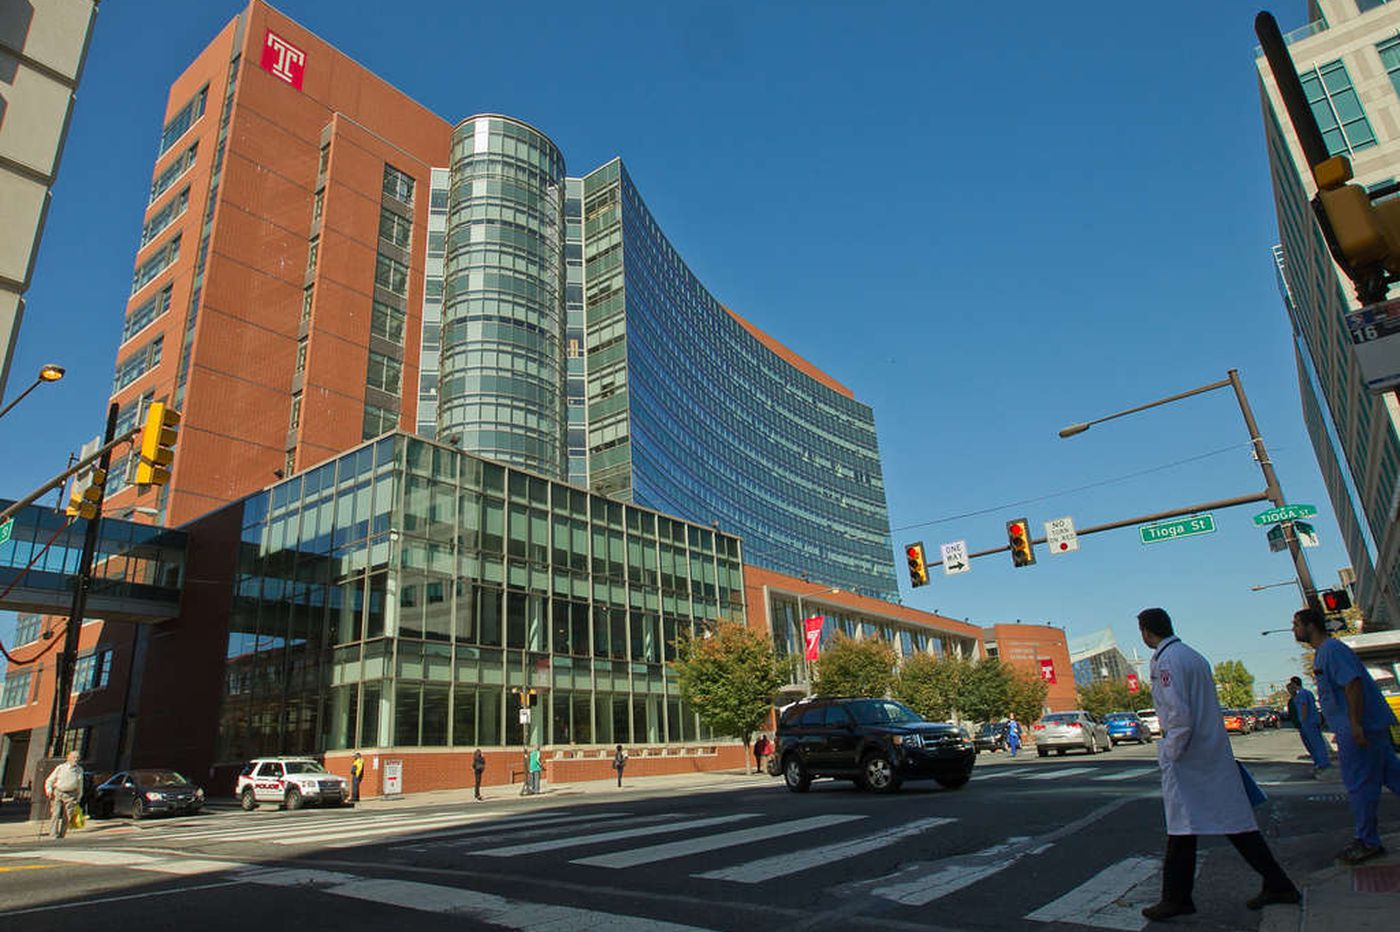 Suspect in custody after 'potential threat' directed at Temple's Lewis Katz School of Medicine